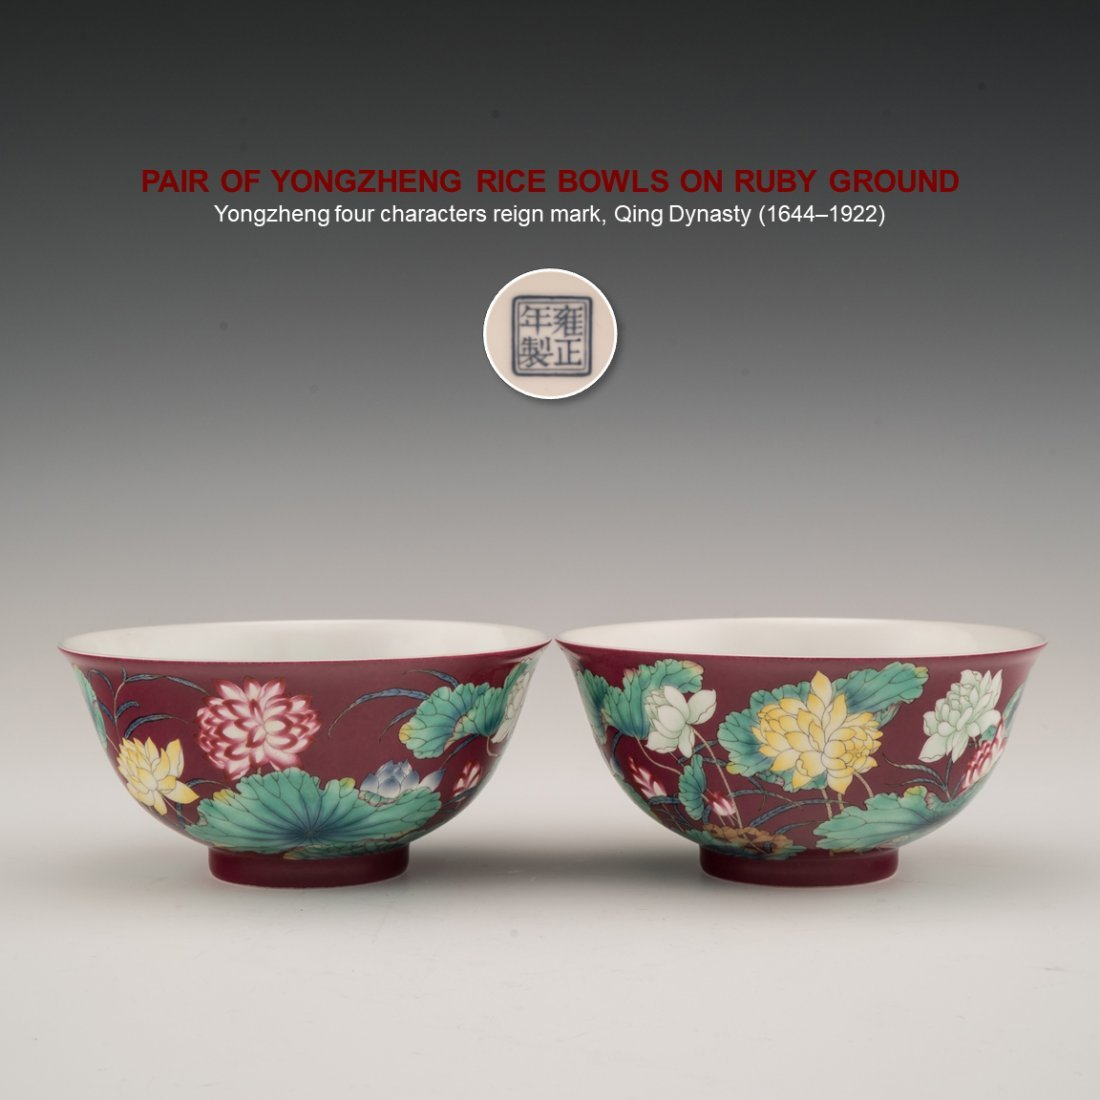 PAIR OF YONGZHENG RICE BOWLS ON RUBY GROUND